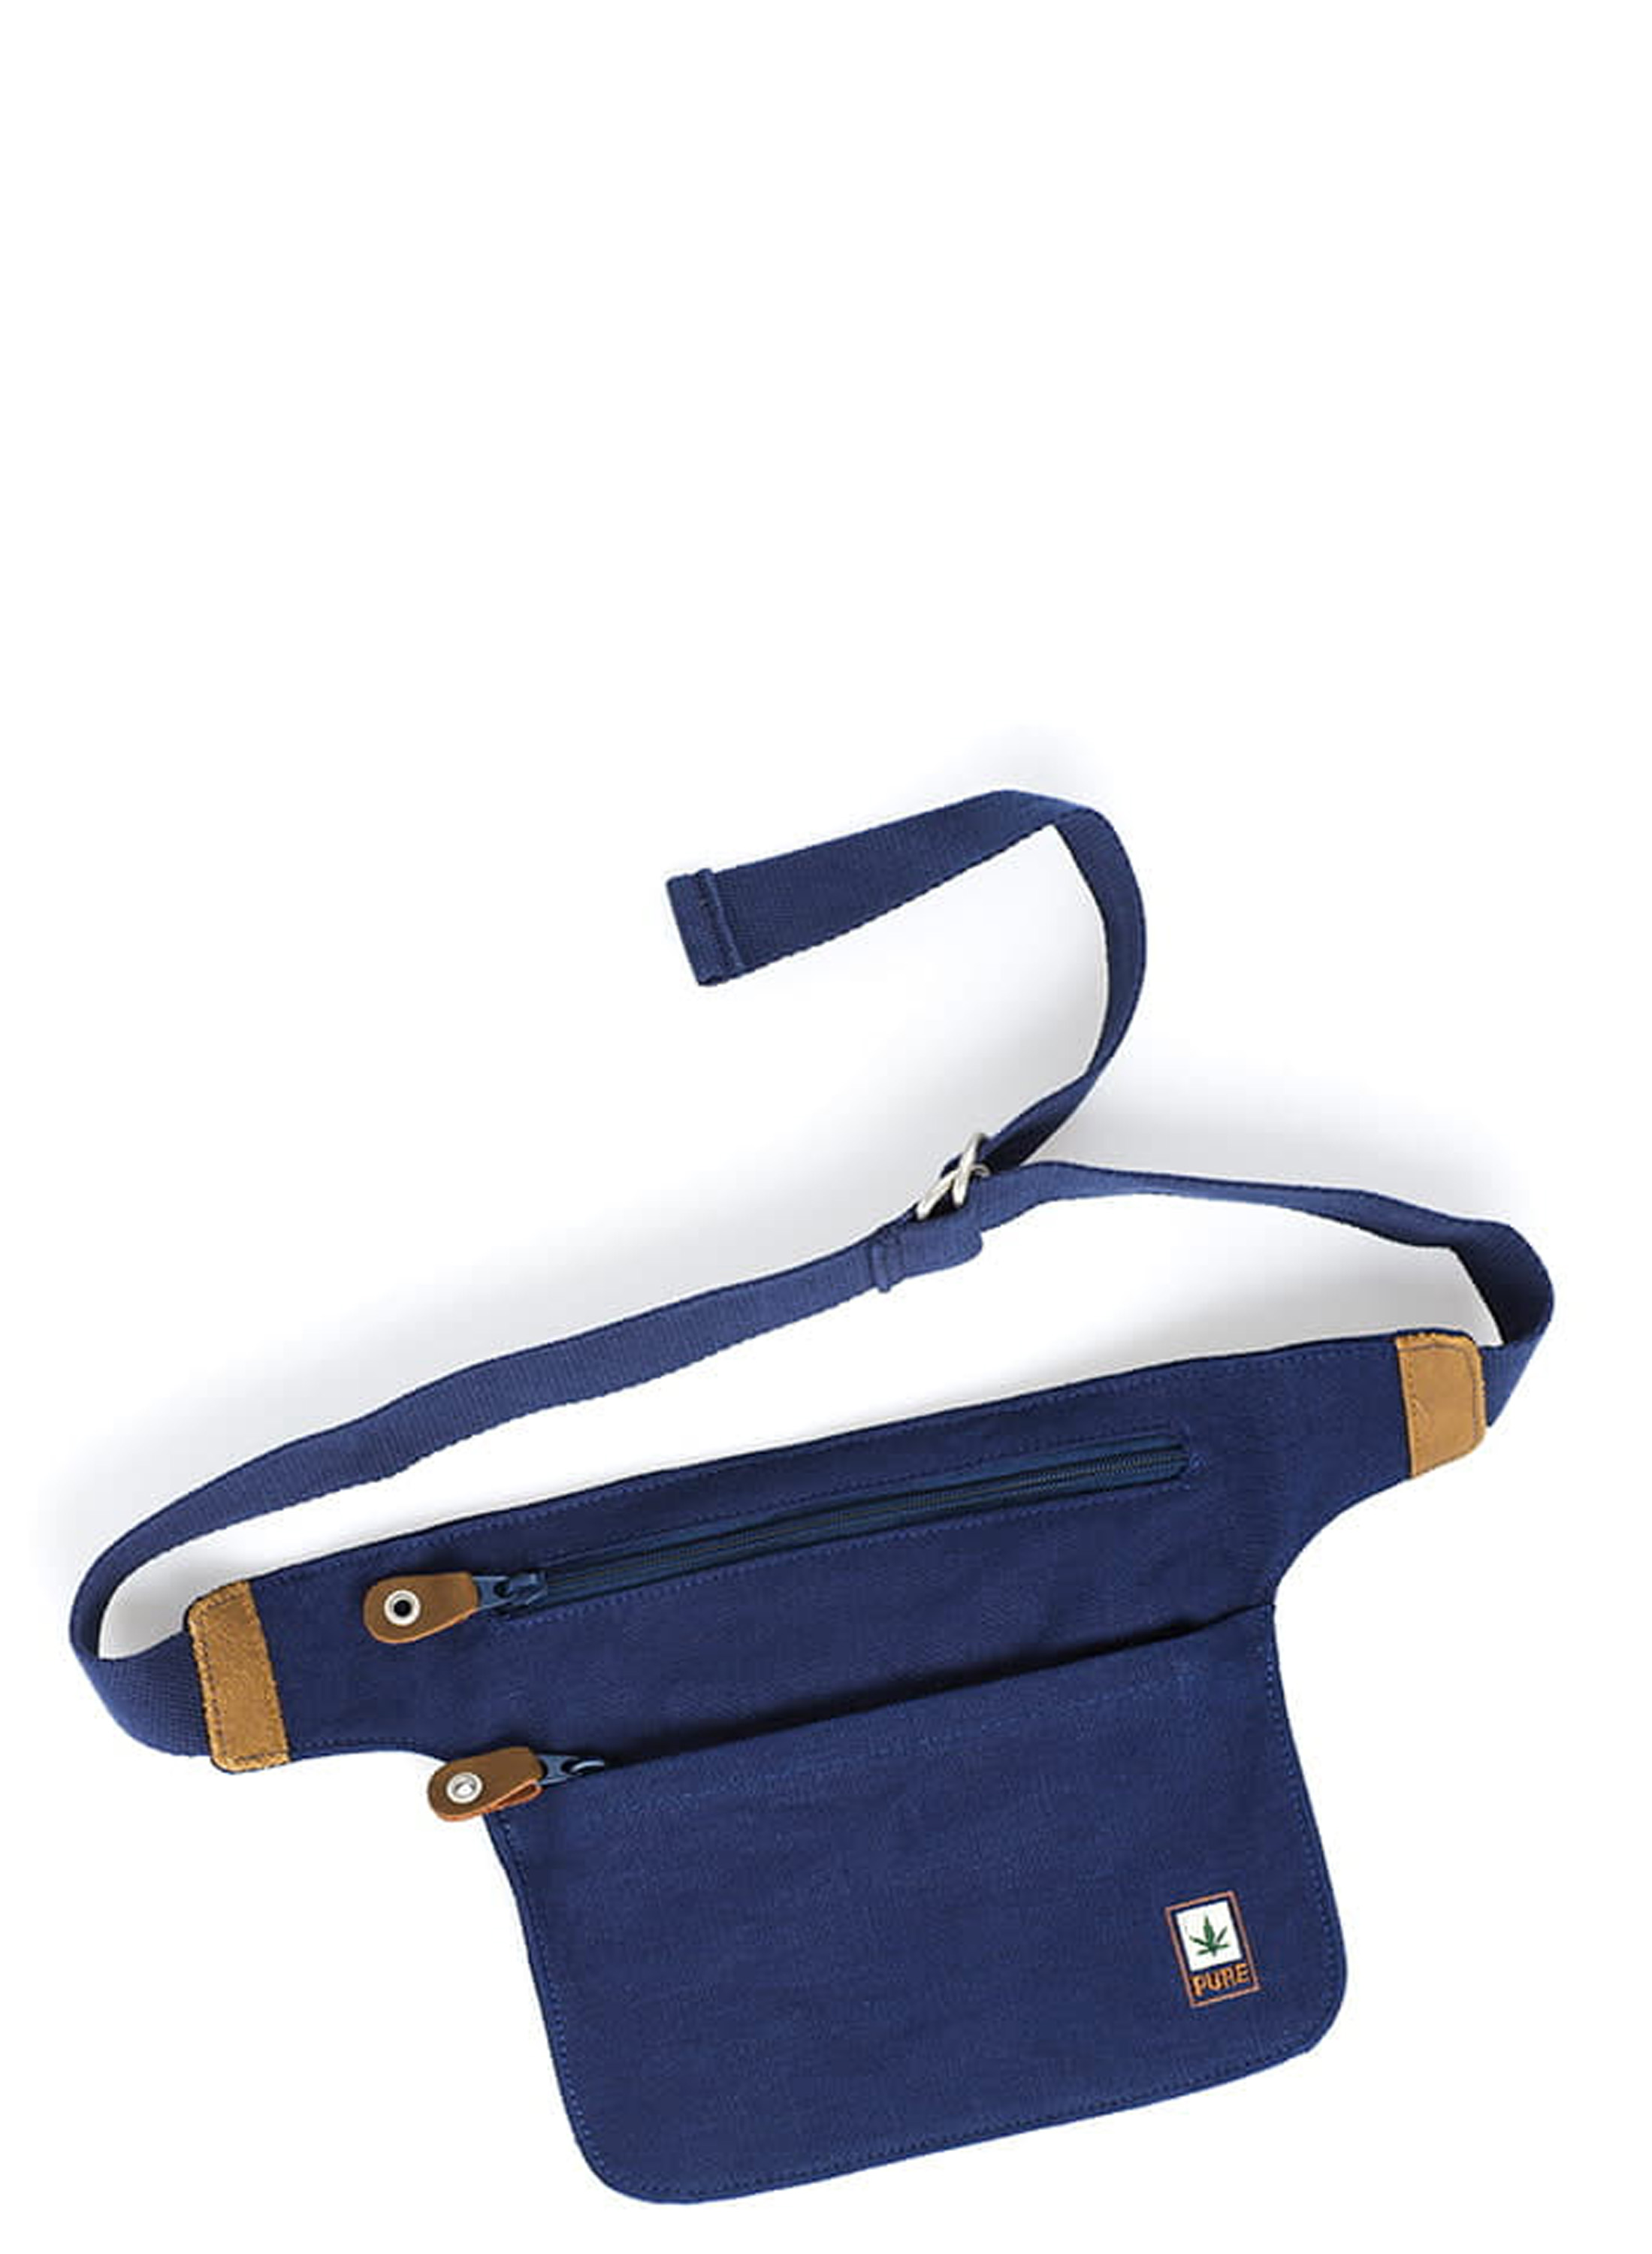 XS Body Belt Bag HF-0050